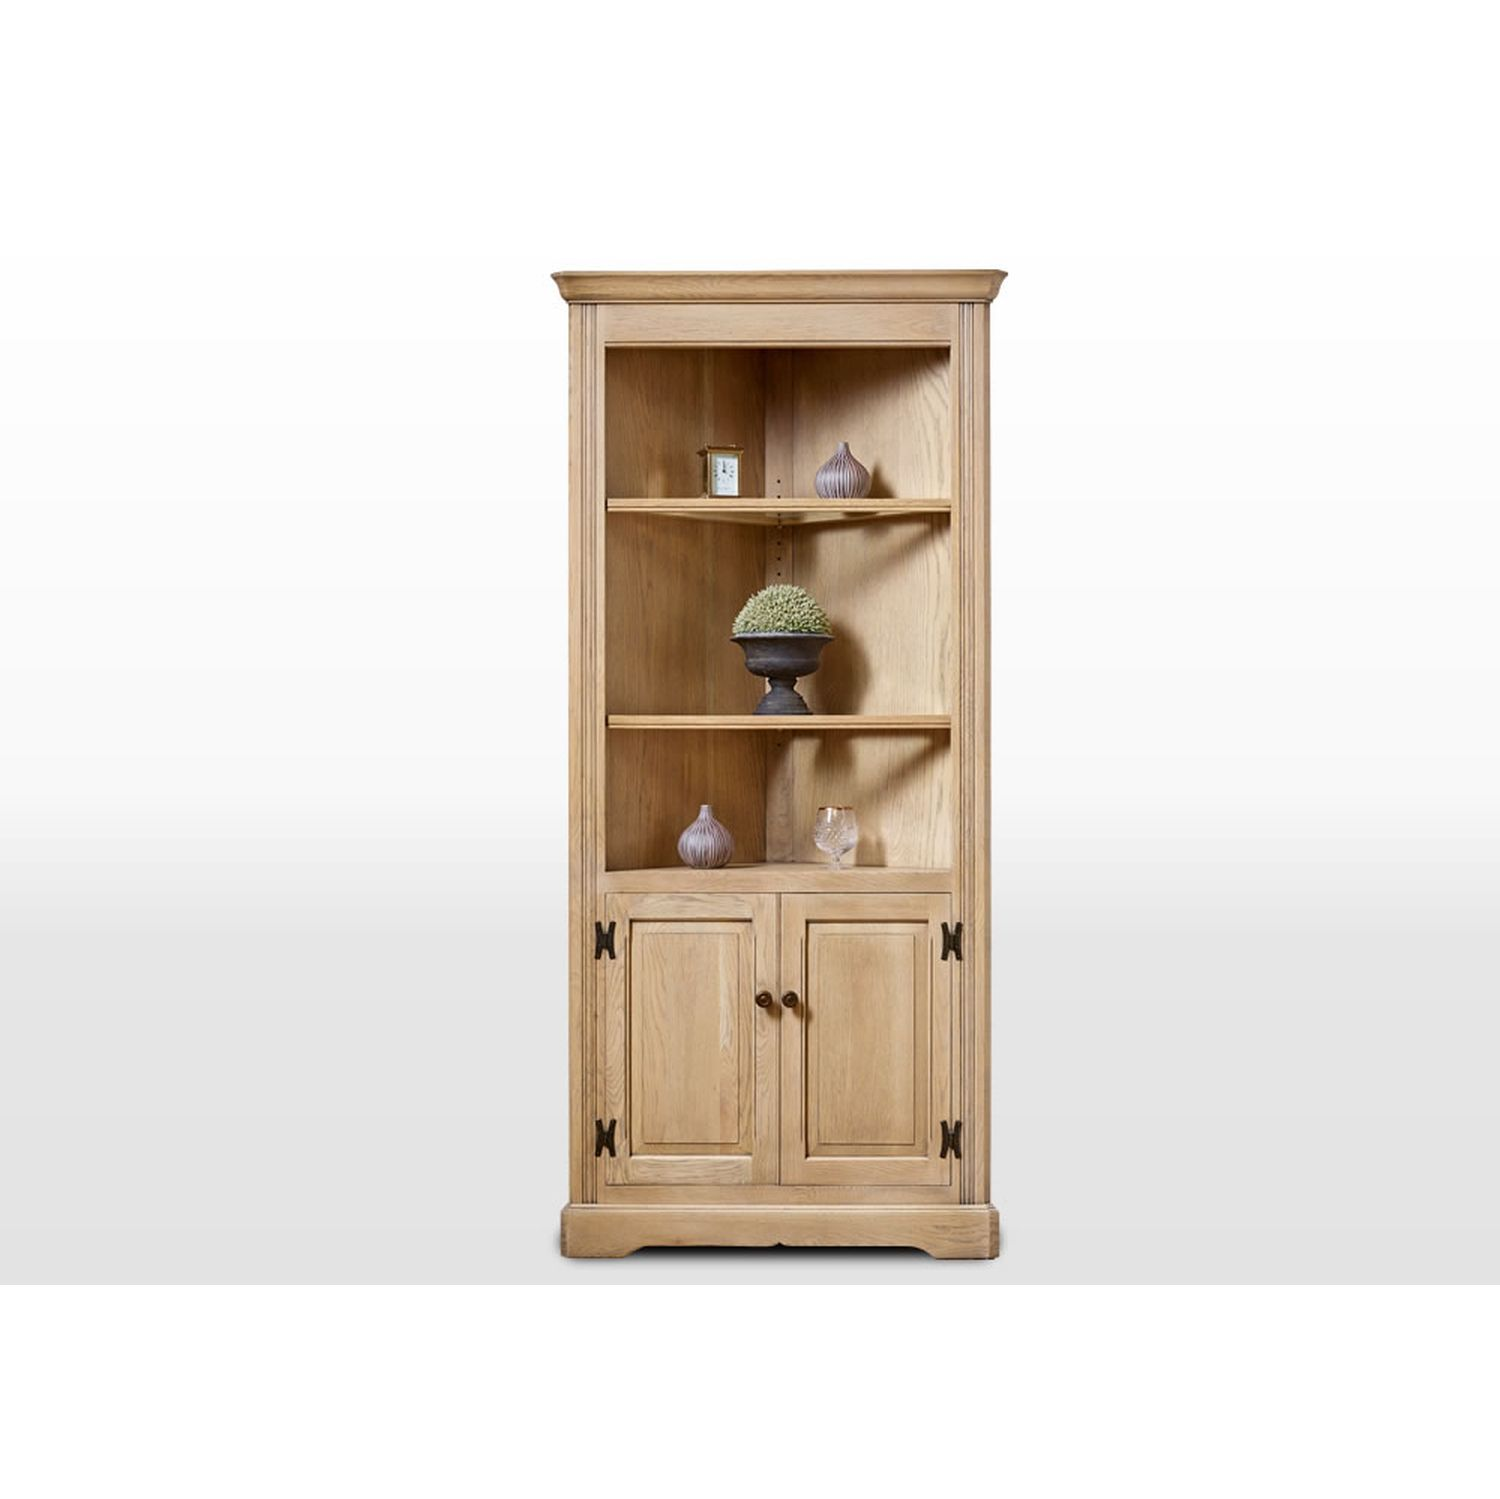 Image of Old Charm Open Corner Cabinet